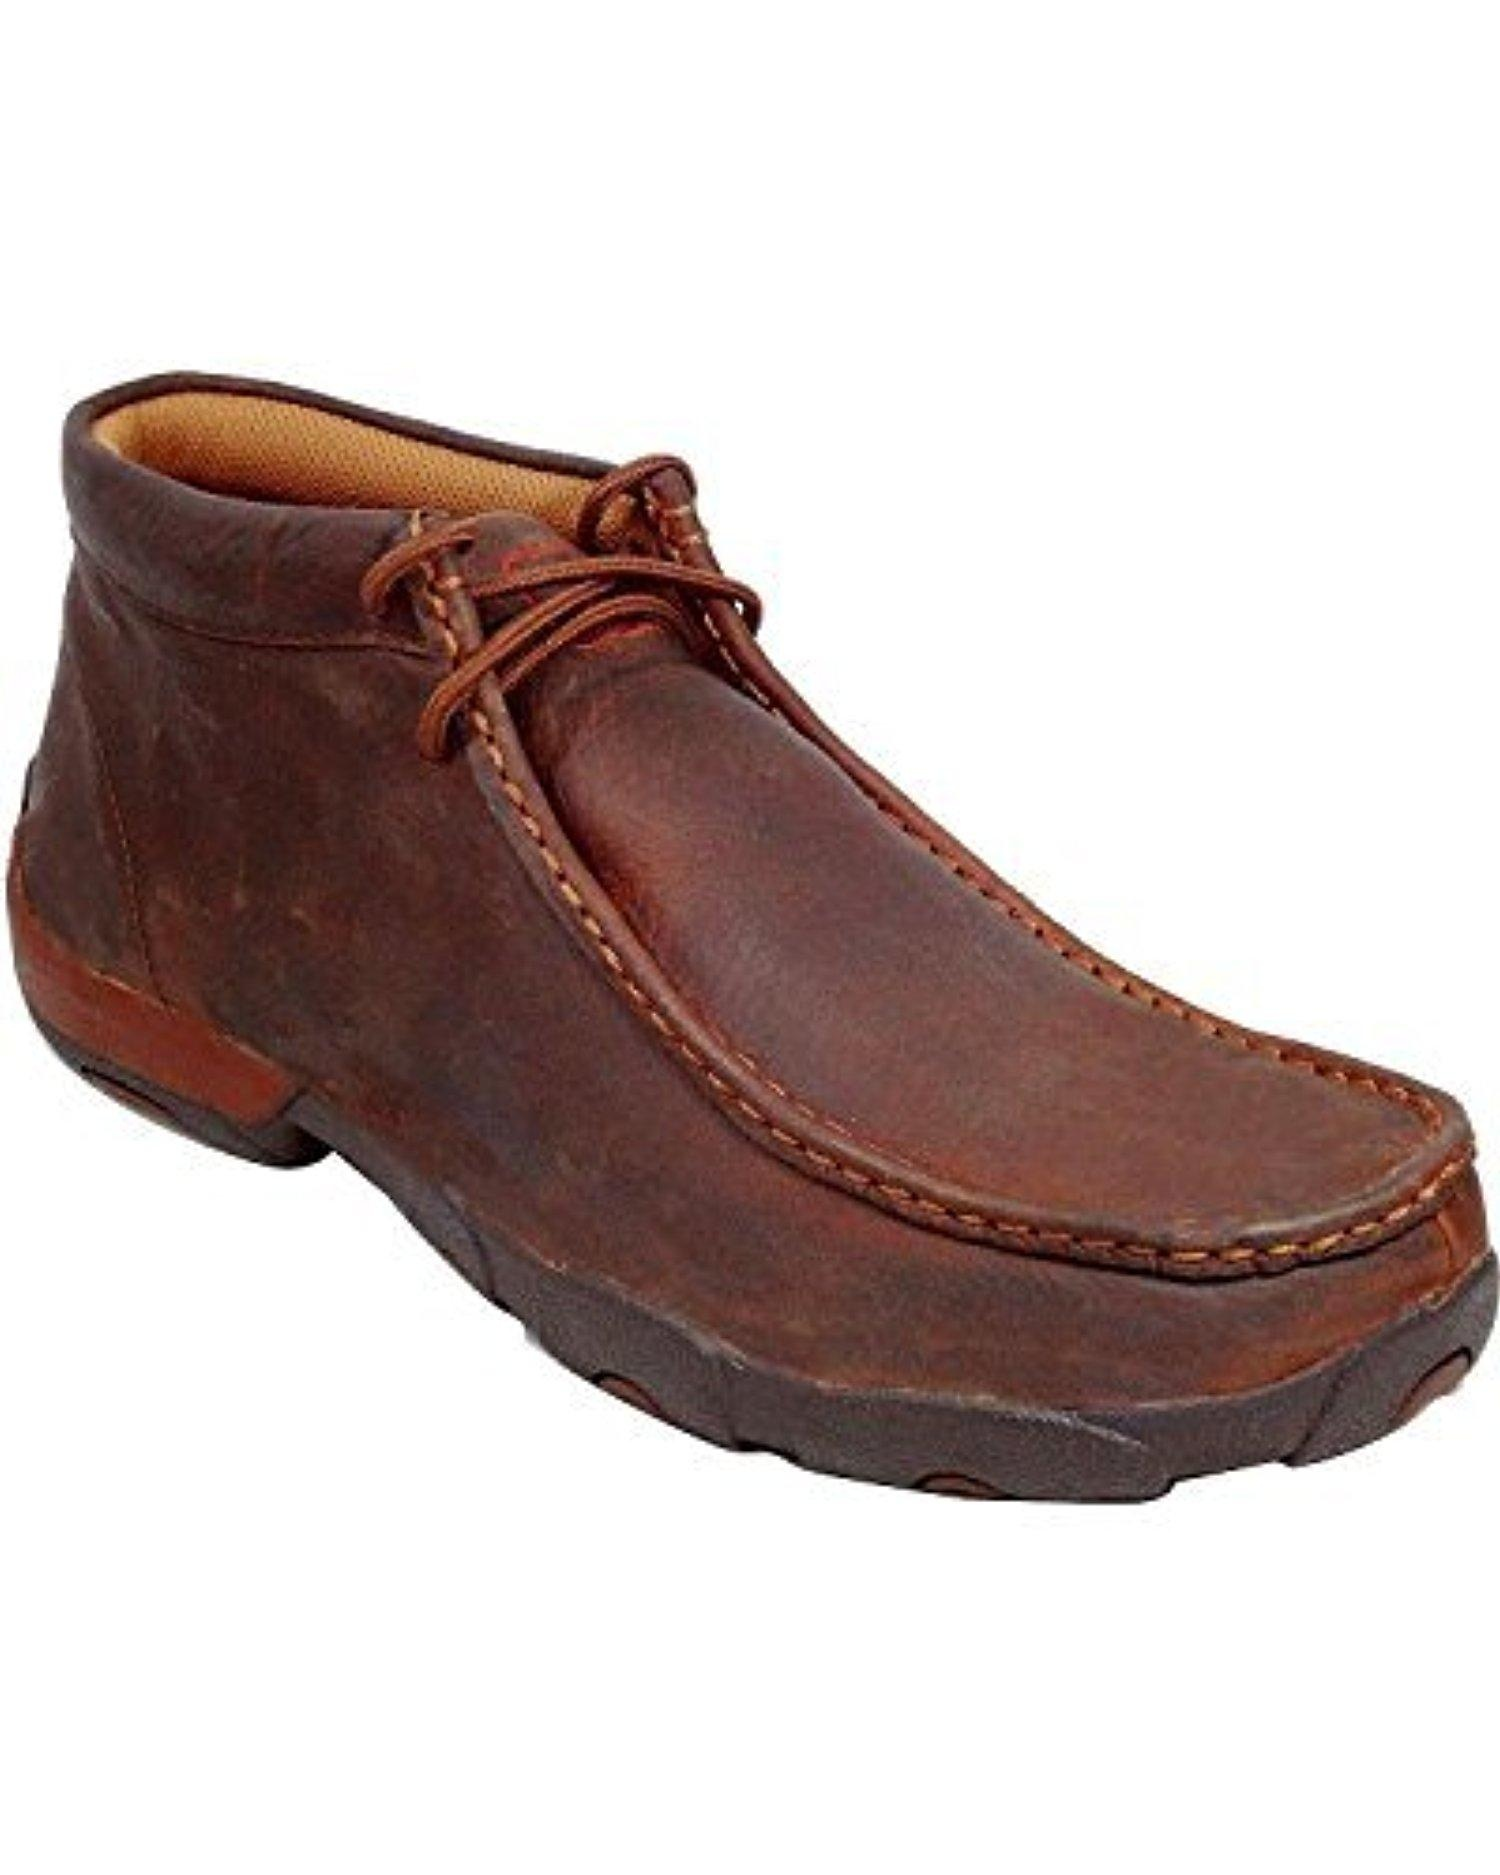 Twisted X Men's Driving Lace-Up Moccasin Shoes Round Toe Copper 11 D(M) US by Twisted X